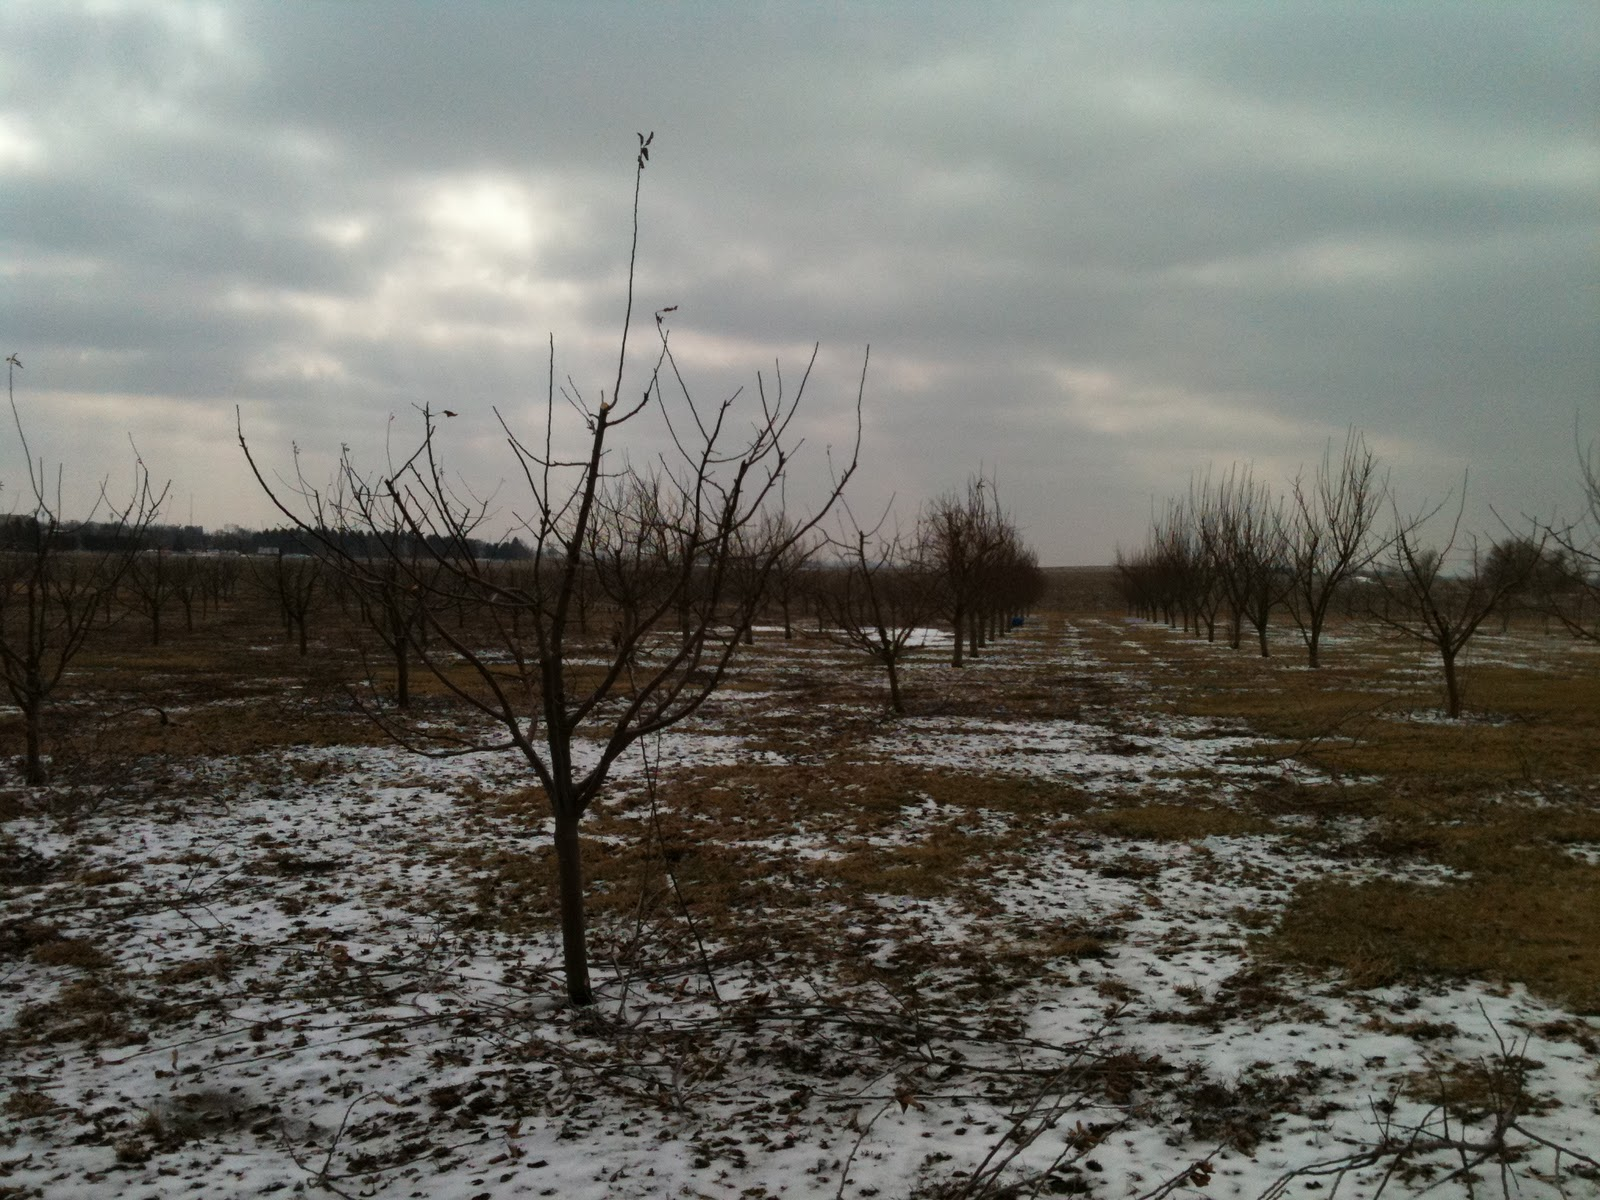 Acquaviva winery orchard pruning season apple trees - Spring trimming orchard trees healthy ...